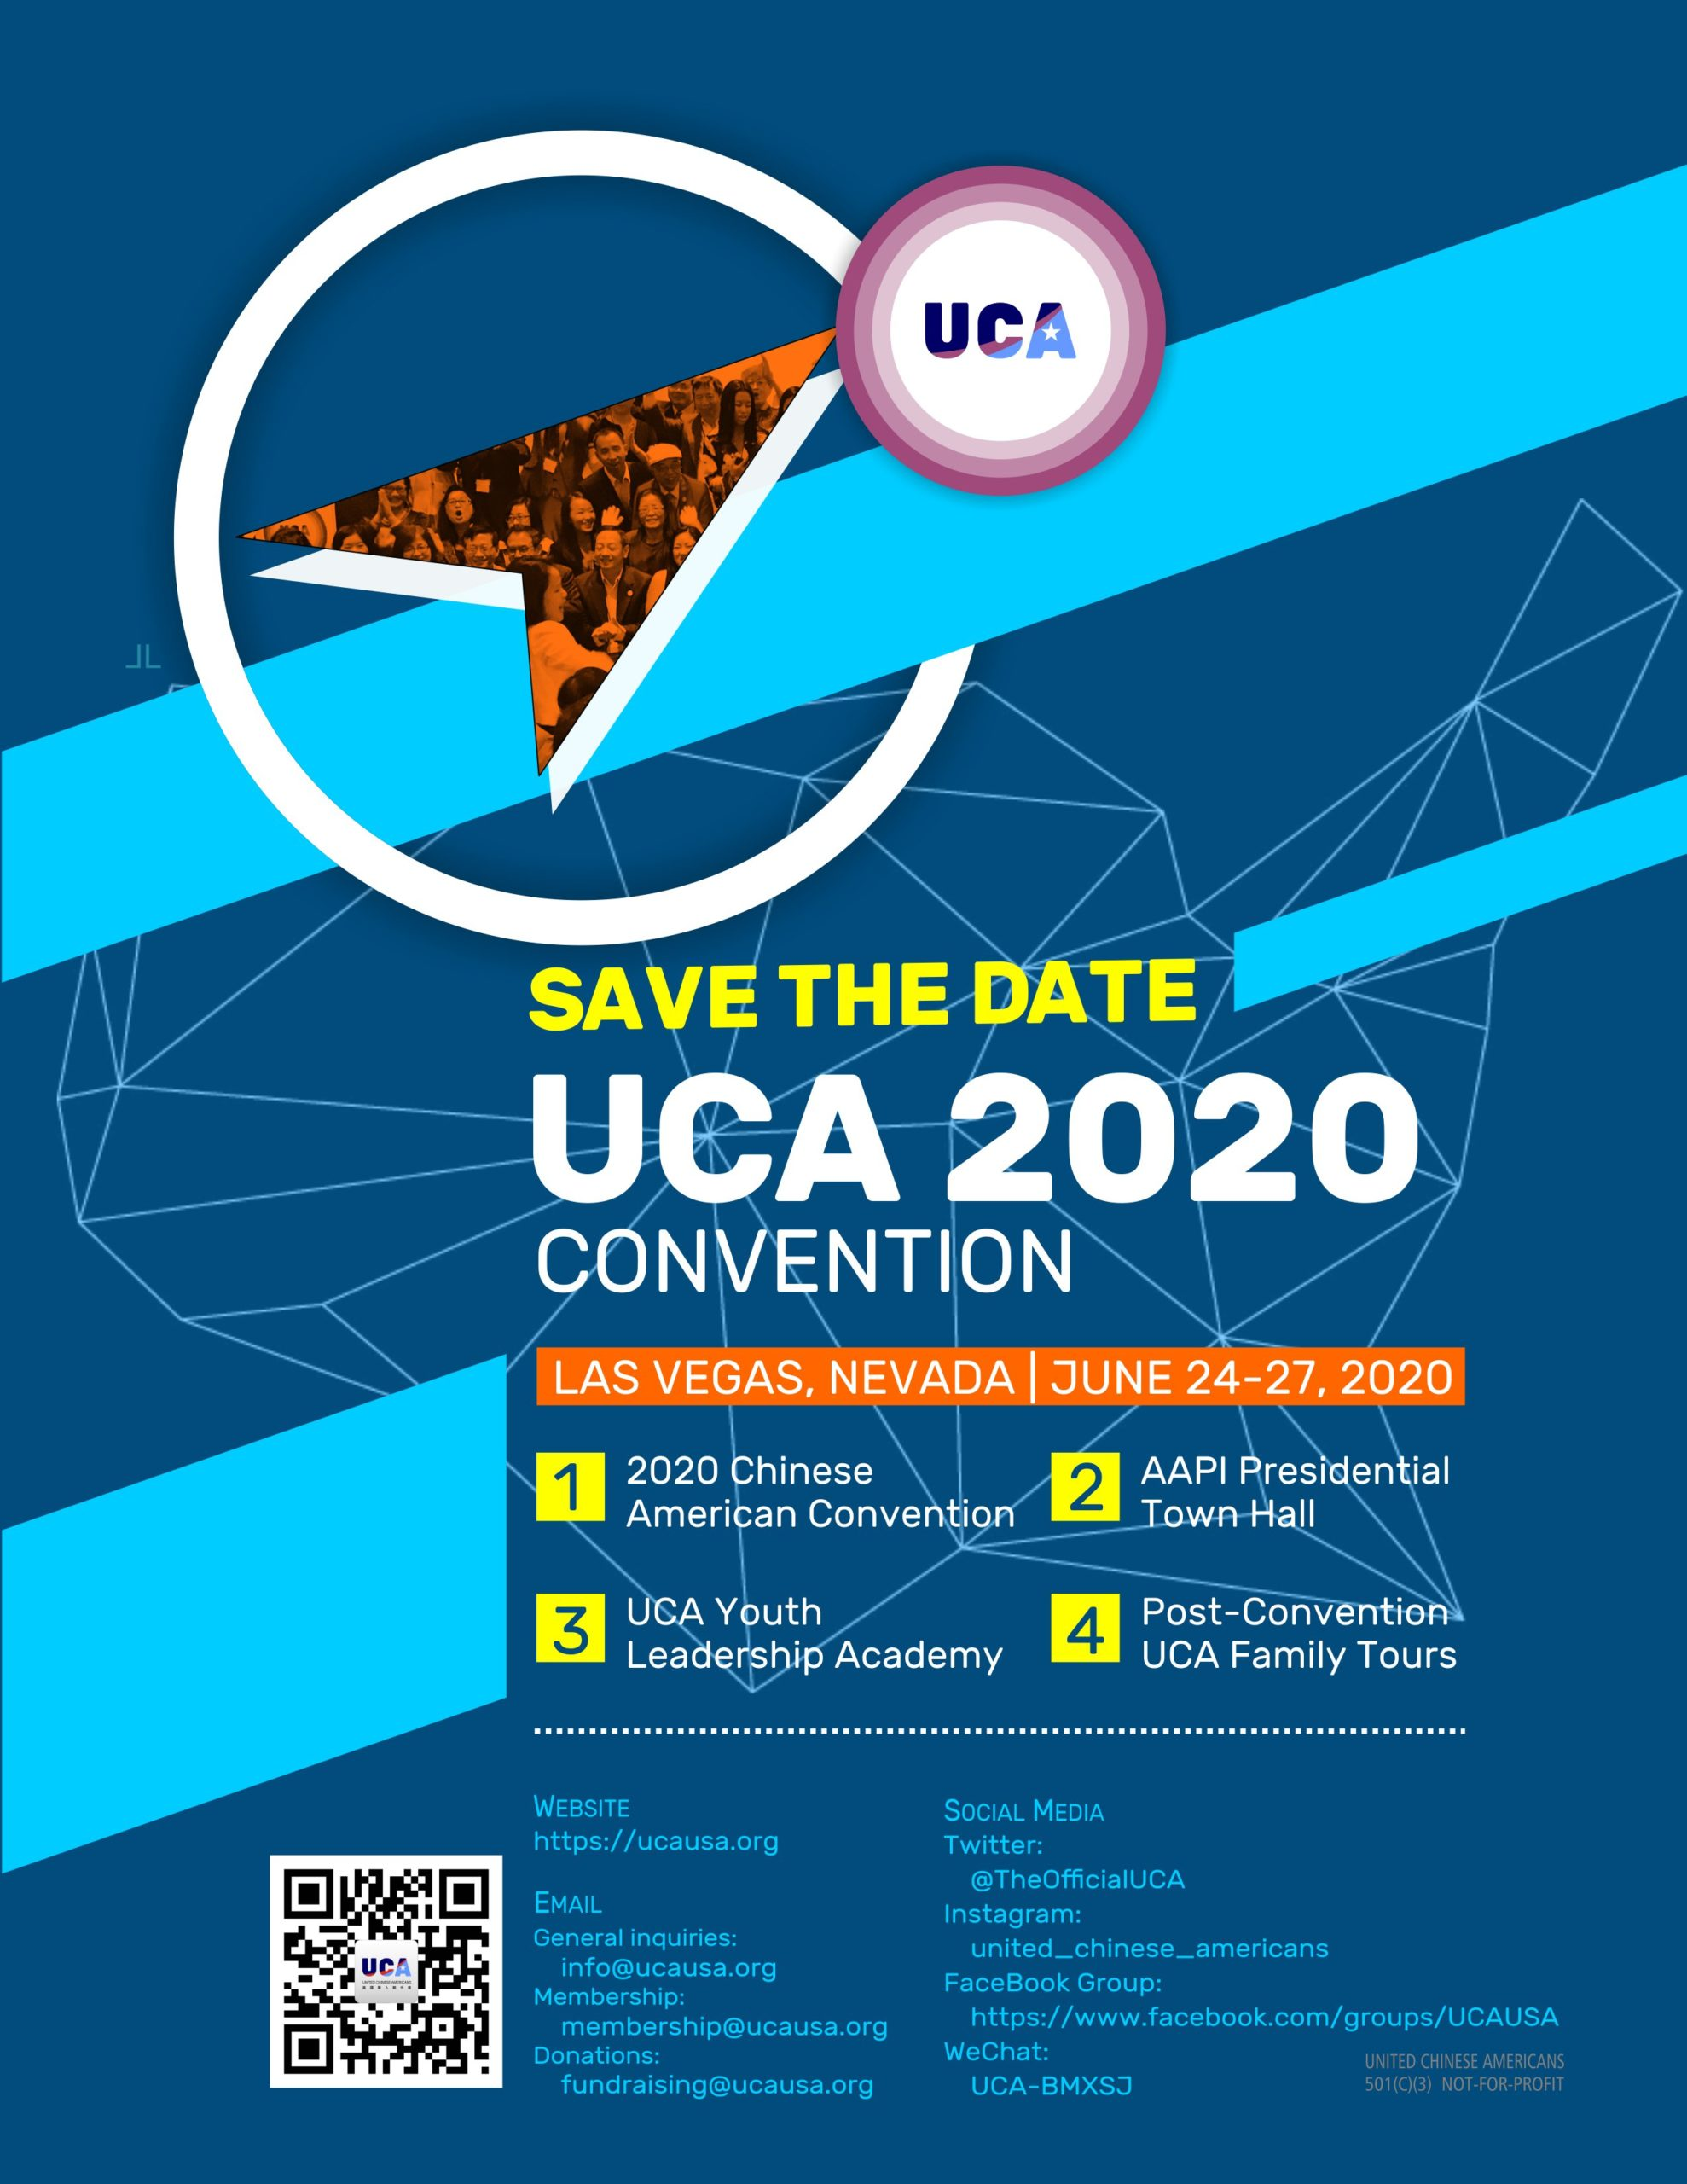 uca2020-savethedate